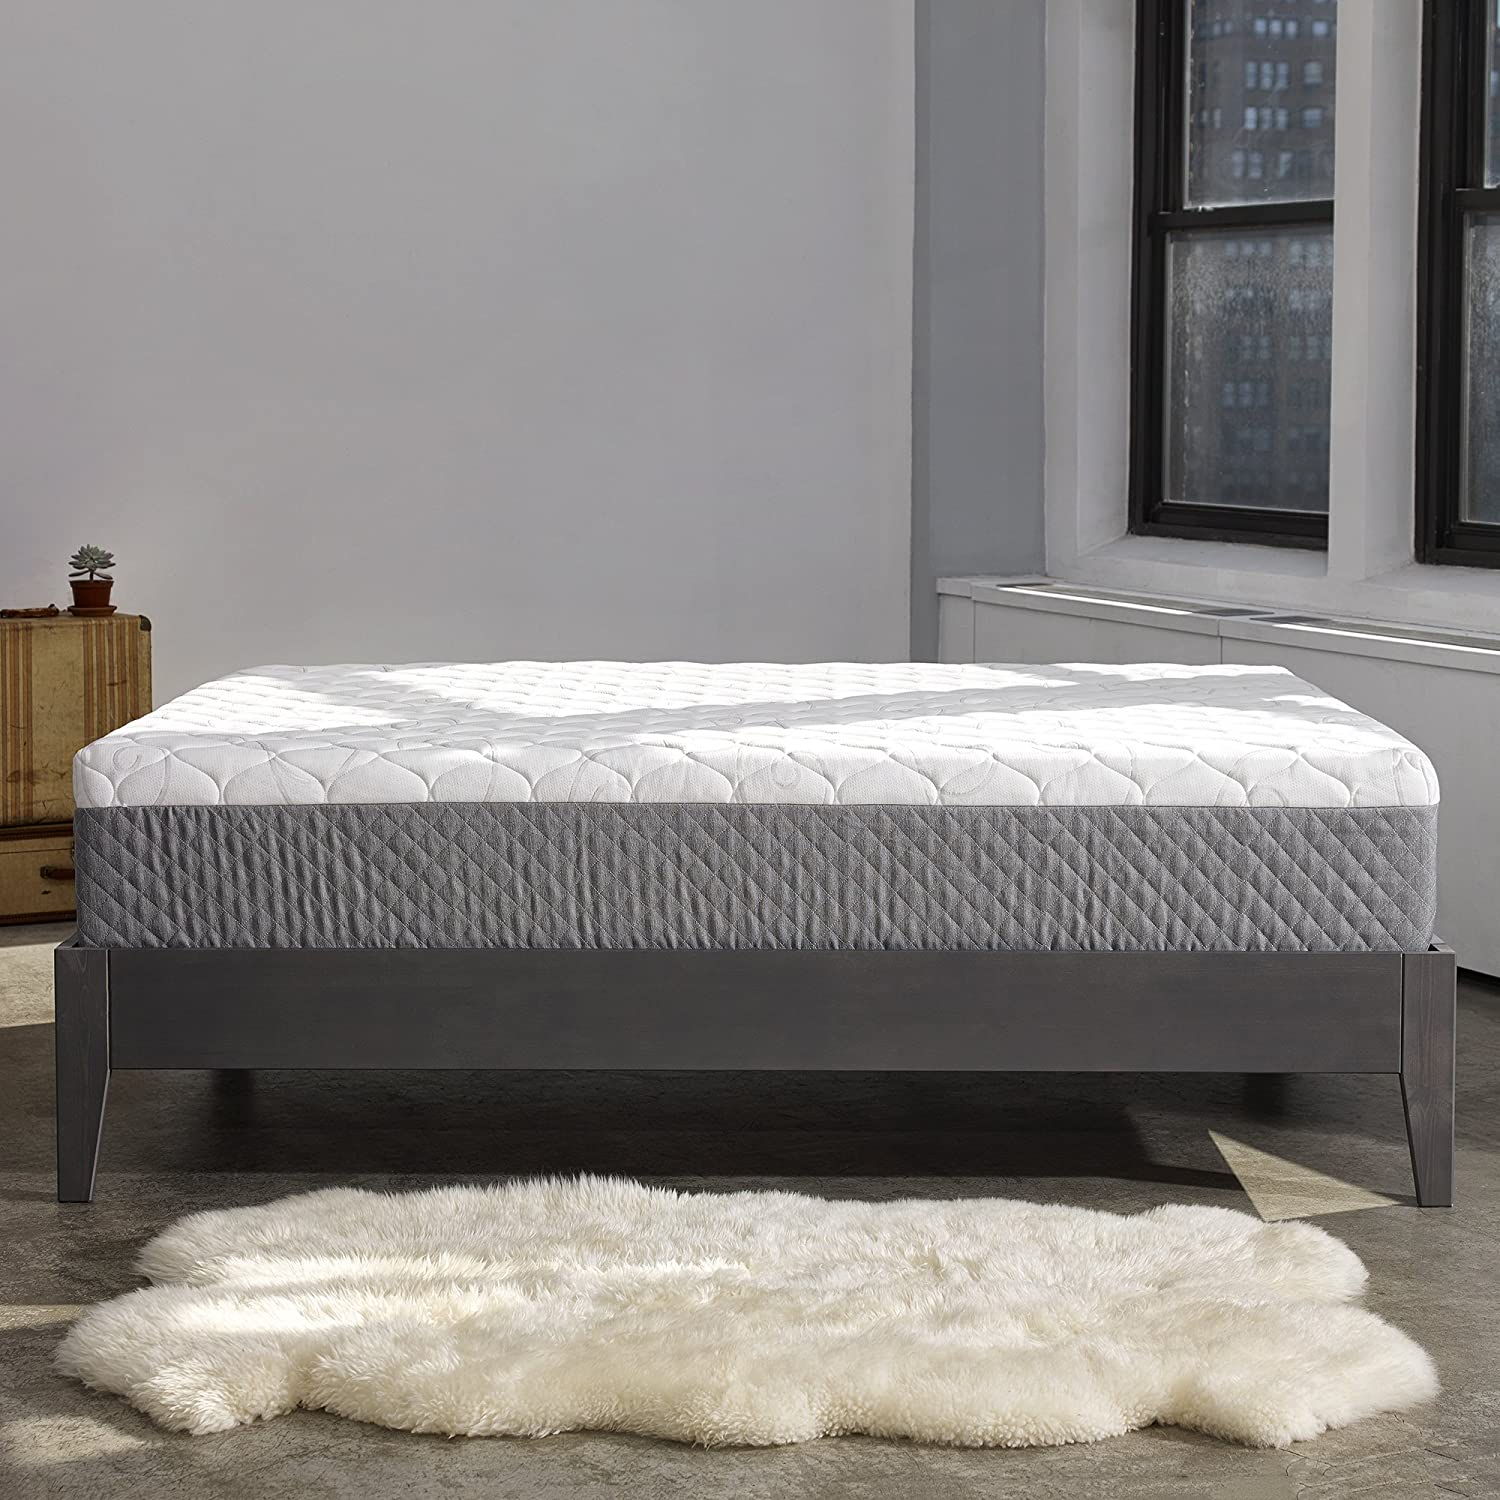 best-mattress-for-side-sleepers-23